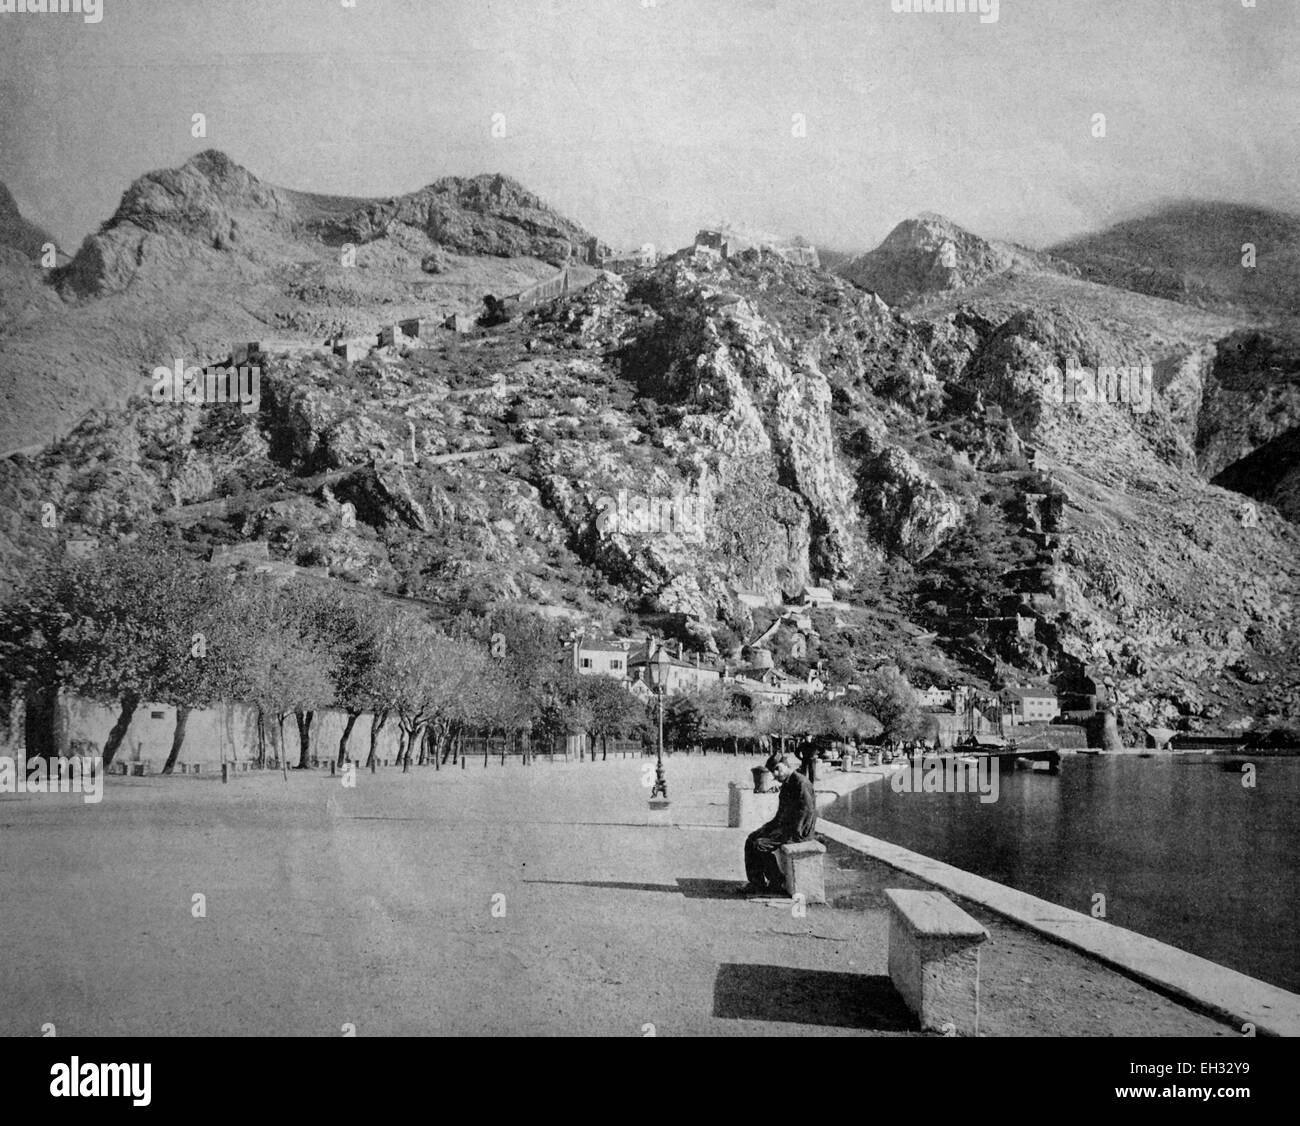 One of the first autotypes of Cattaro, Kotor, formerly Austria, now Montenegro, historical photograph, 1884 - Stock Image